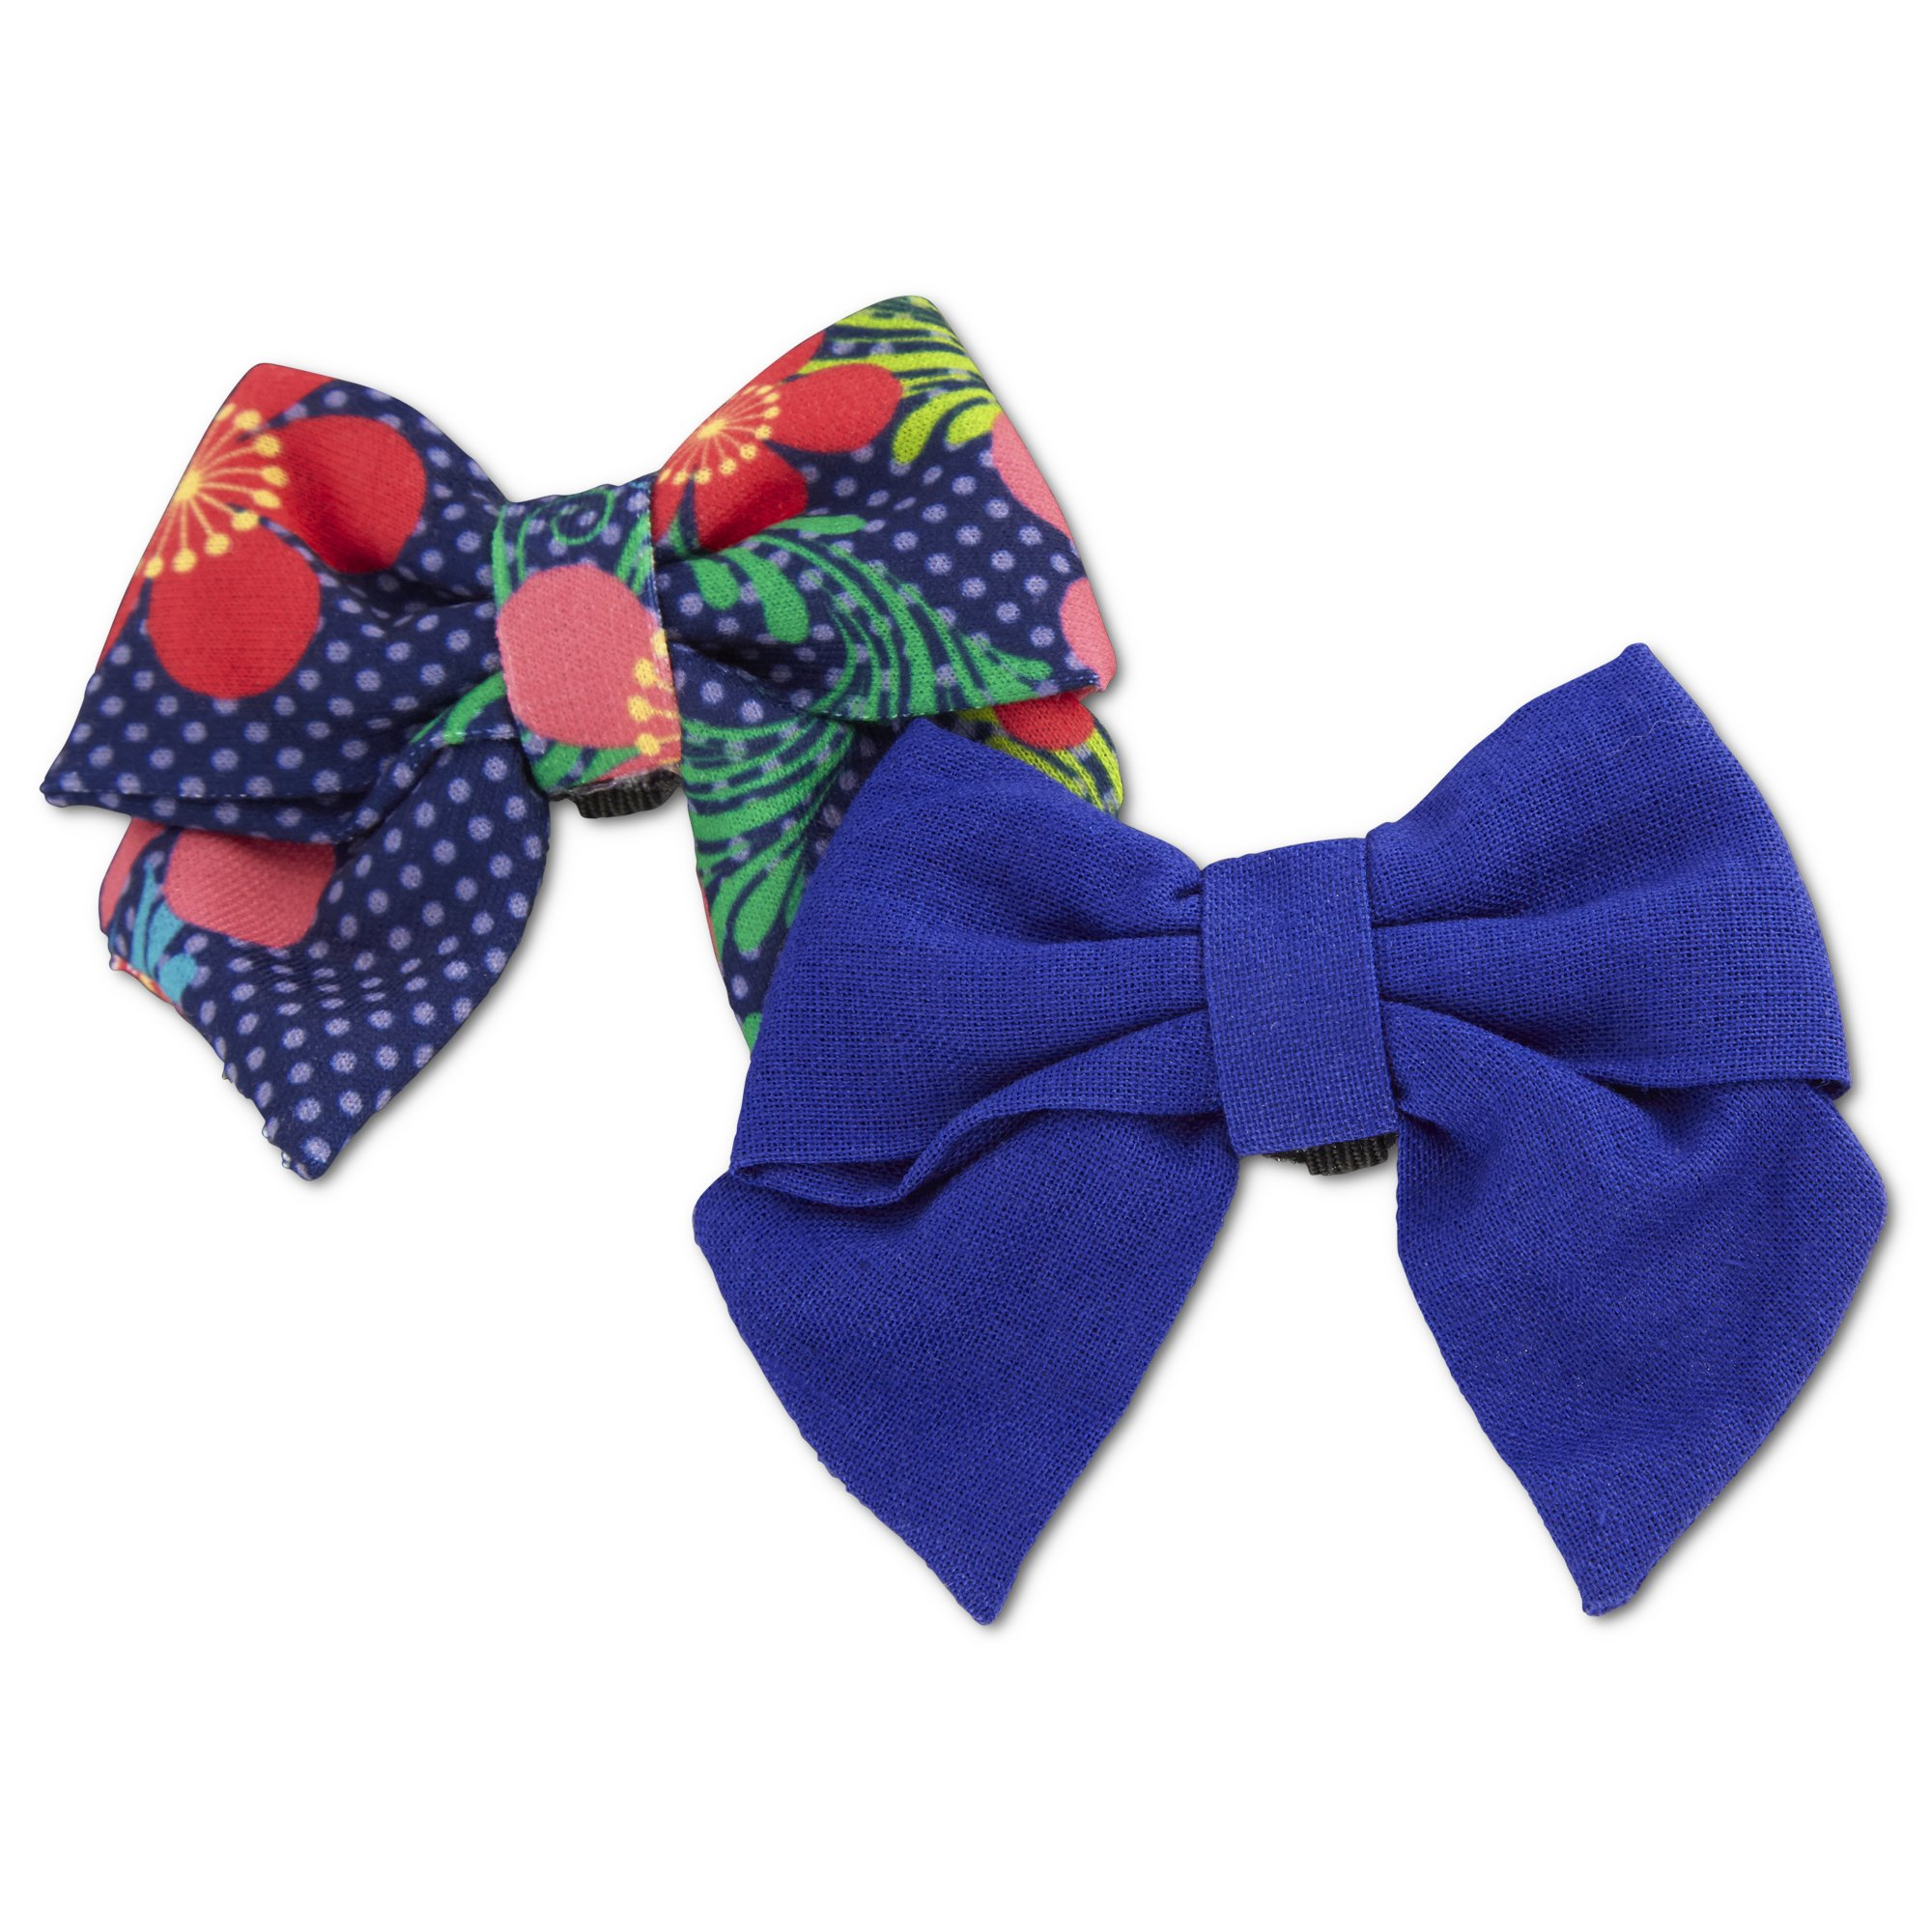 Bond Co Blue Floral Bows For Small Dogs 2 Pack Small Dogs Dog Hair Bows Petco